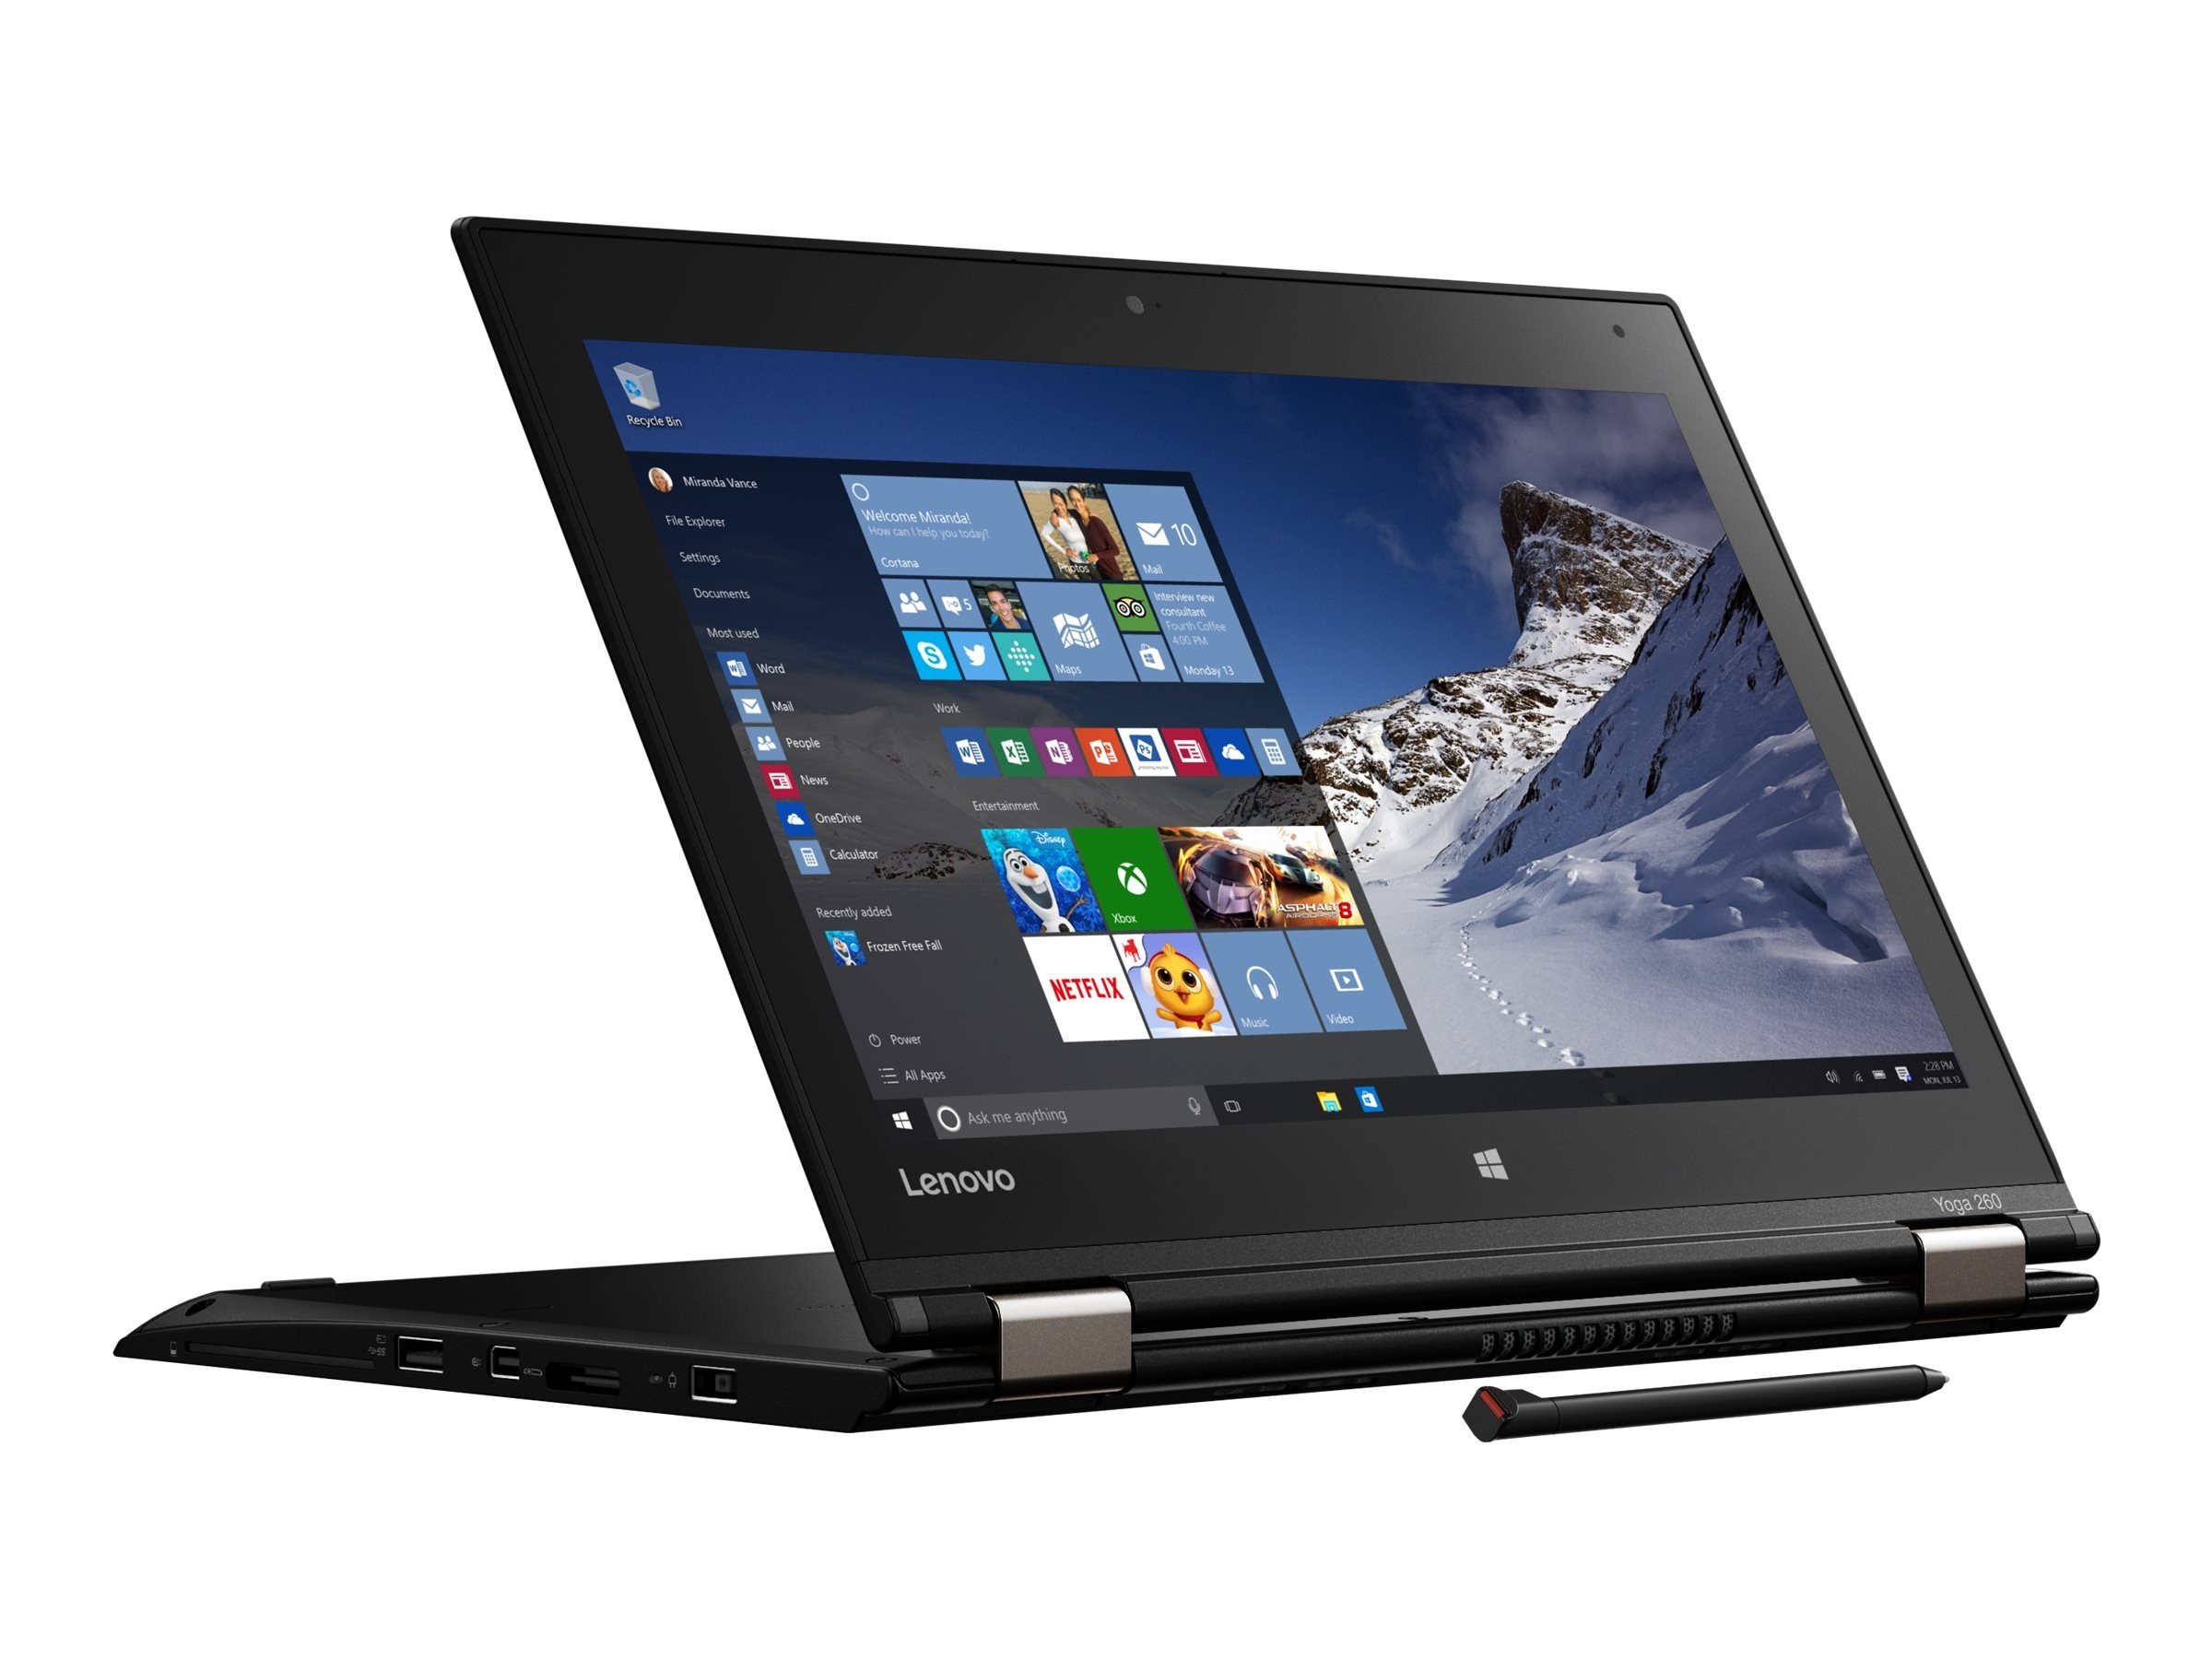 Lenovo TopSeller ThinkPad Yoga 260 Core i7-6600U 2.6GHz 8GB 256GB OPAL2 ac BT WC Pen 4C 12.5 FHD MT W10P64, 20GS000CUS